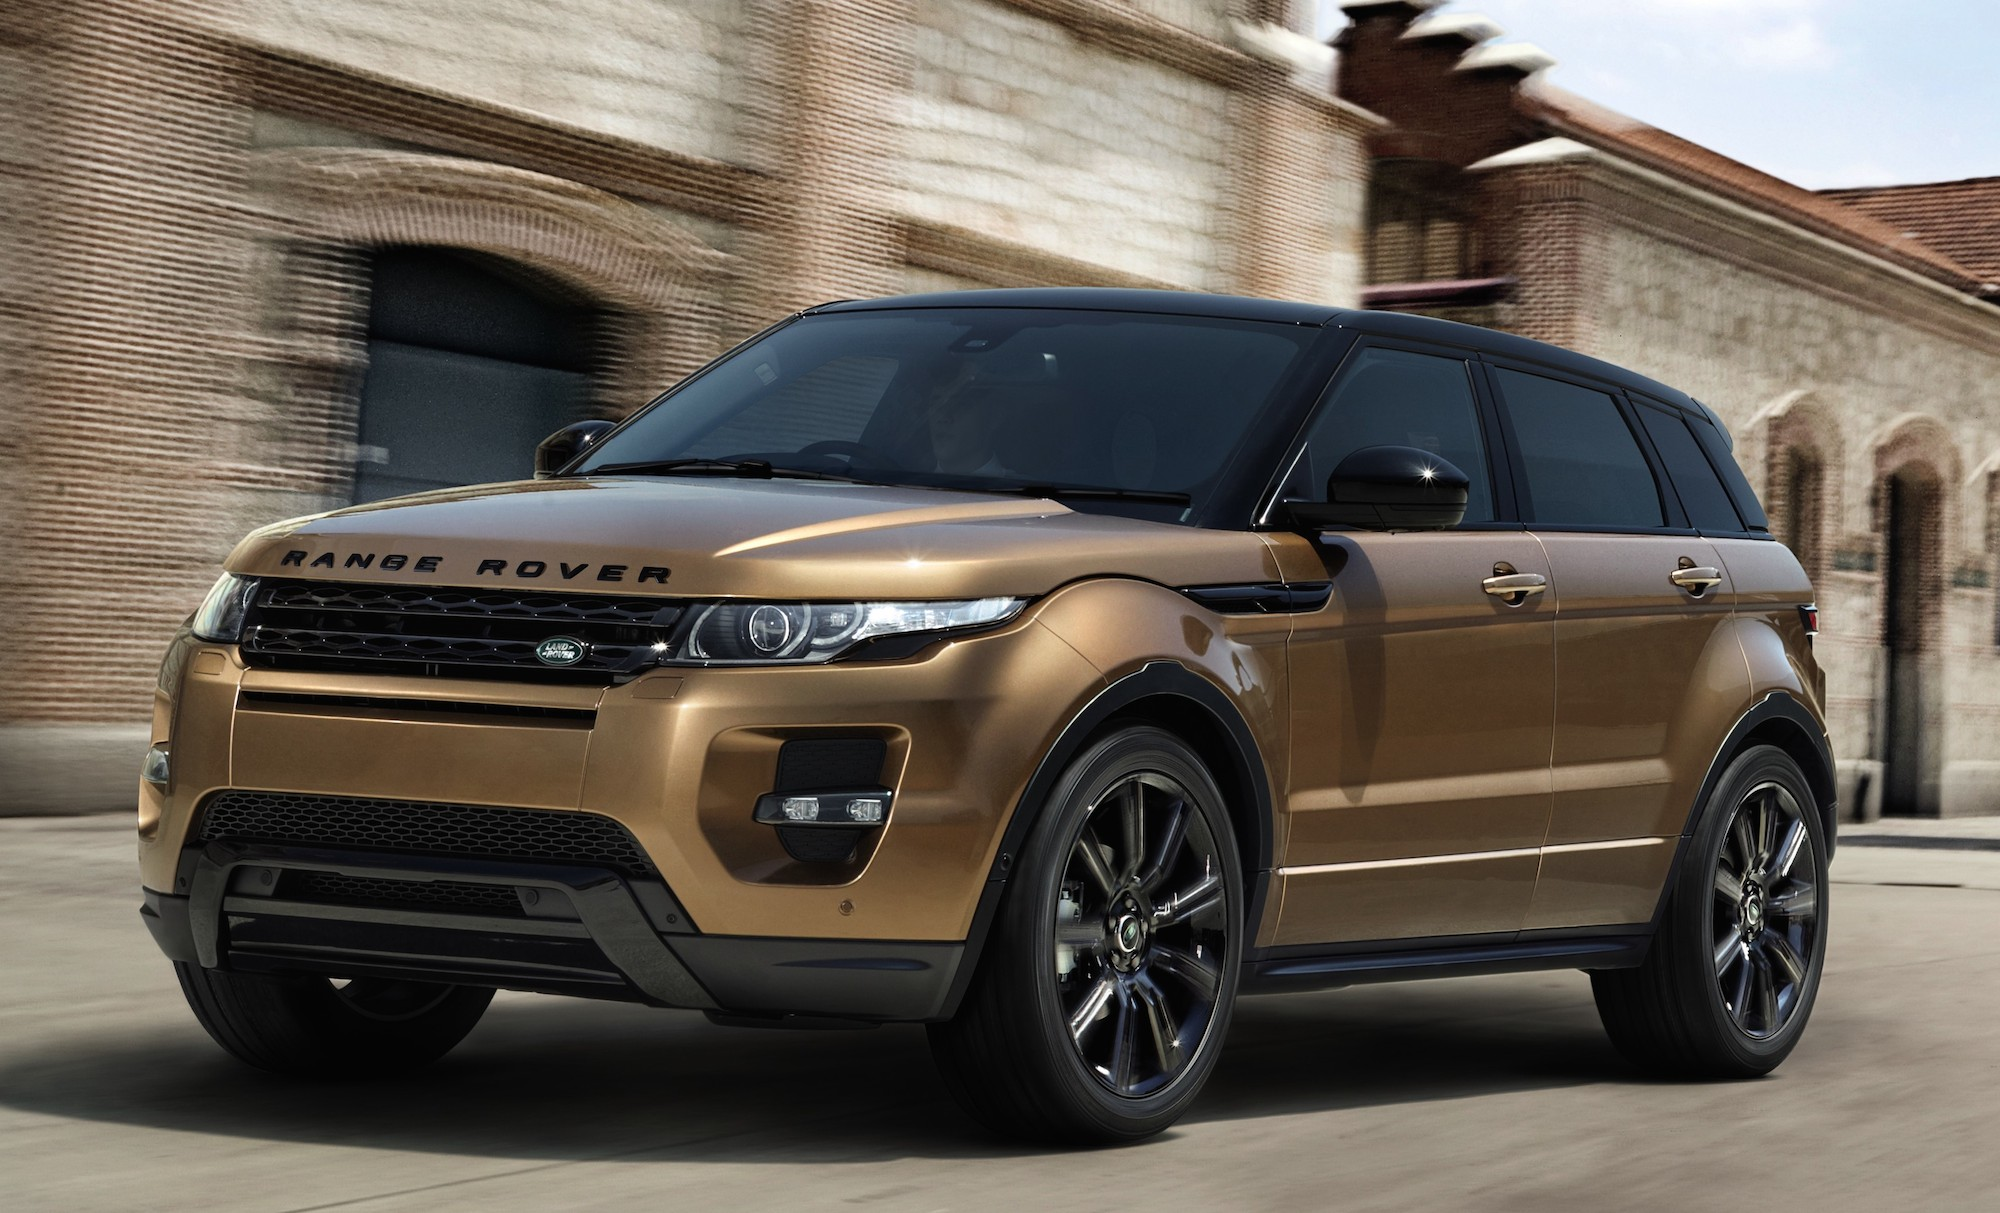 AD 2014 Range Rover Evoque is now out Get up close and personal